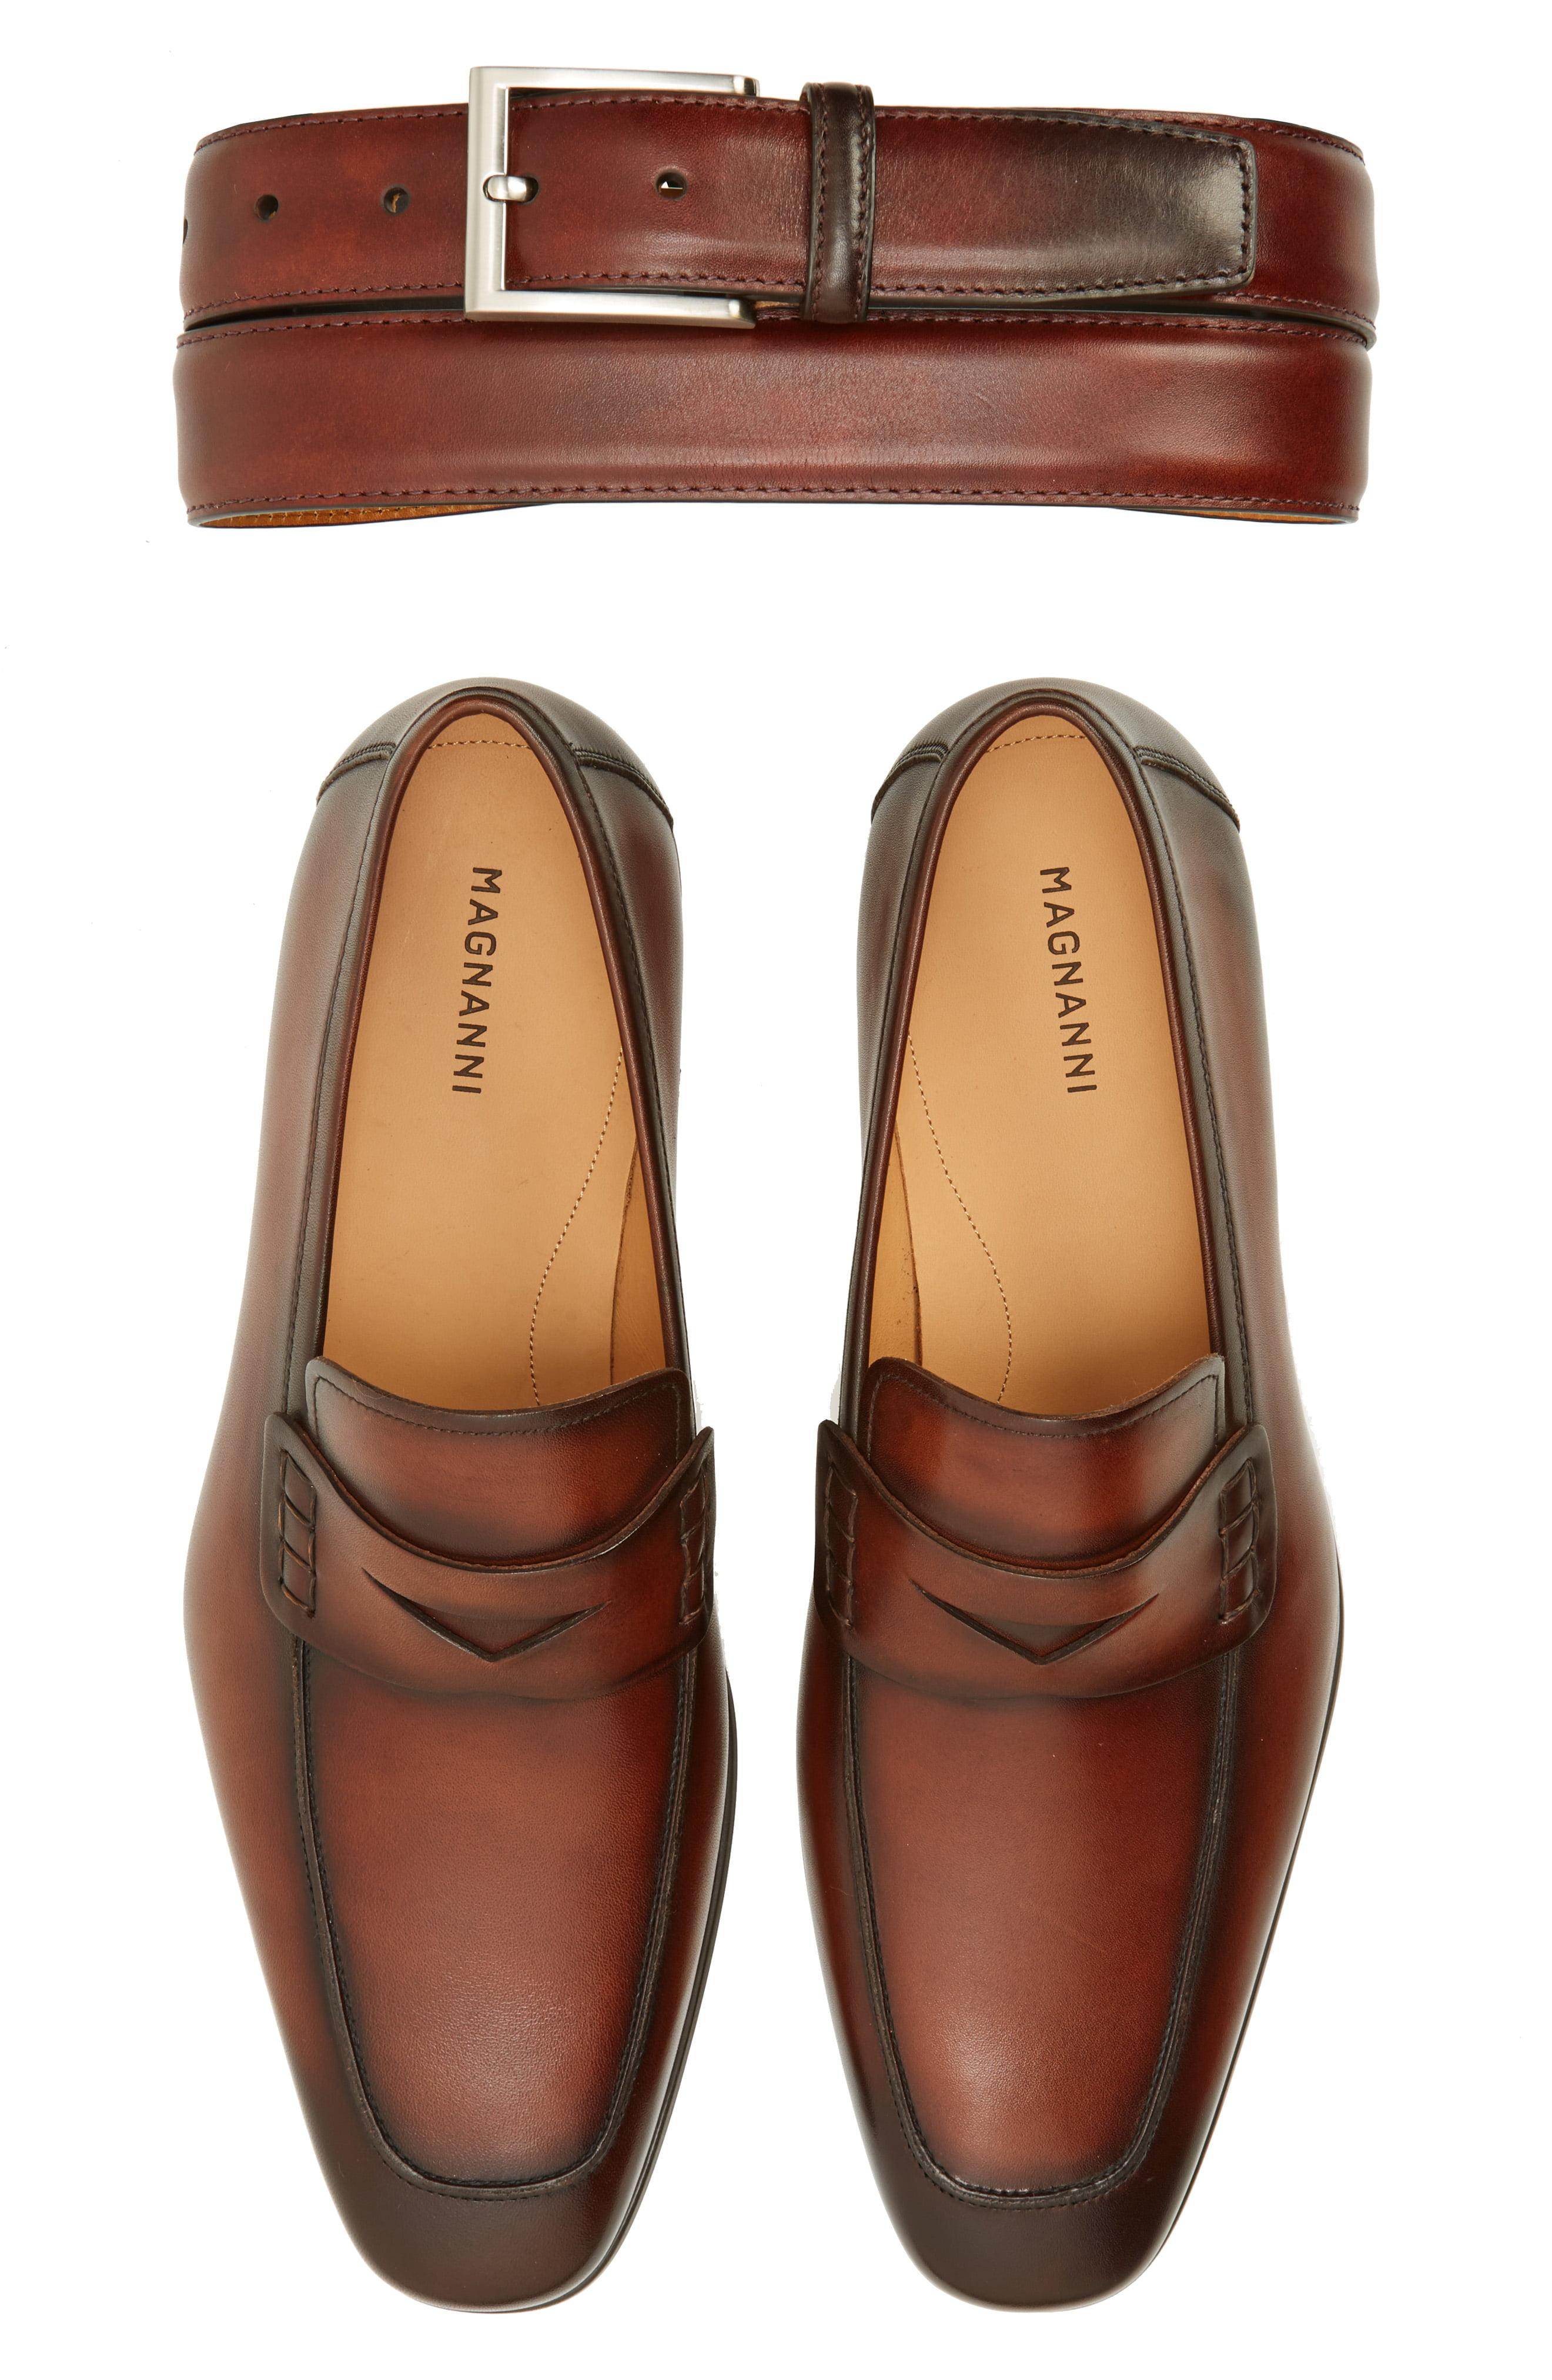 bd069b07727 Magnanni Shoes - Brown  ramiro Ii  Penny Loafer for Men - Lyst. View  fullscreen